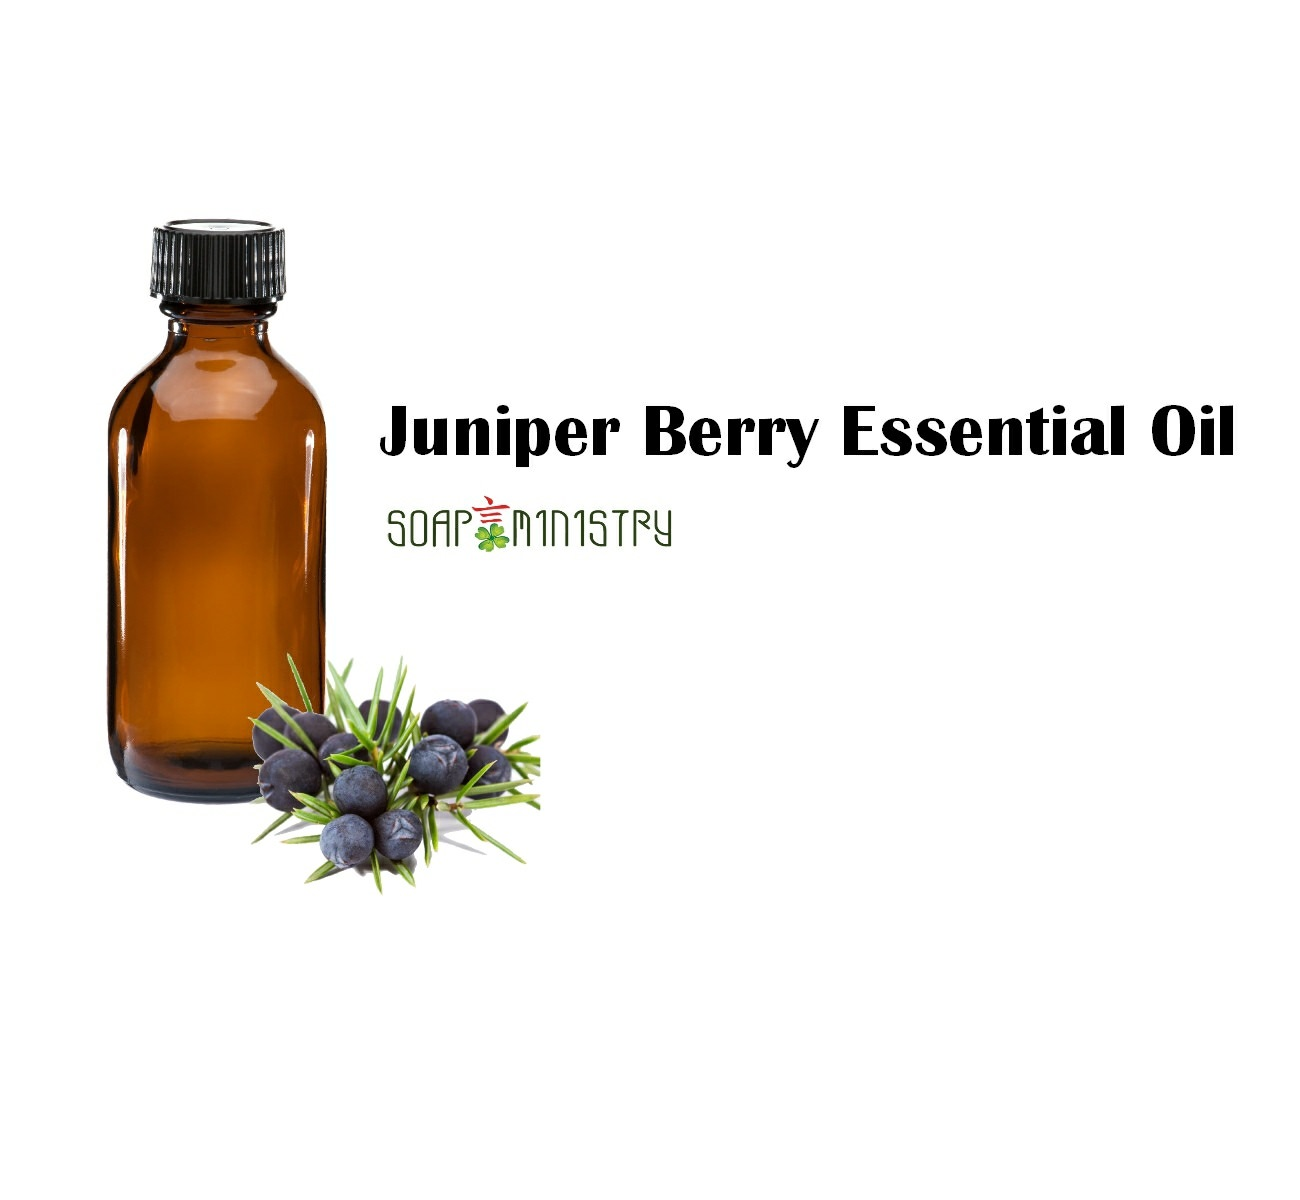 Juniper Berry Essential Oil 500ml